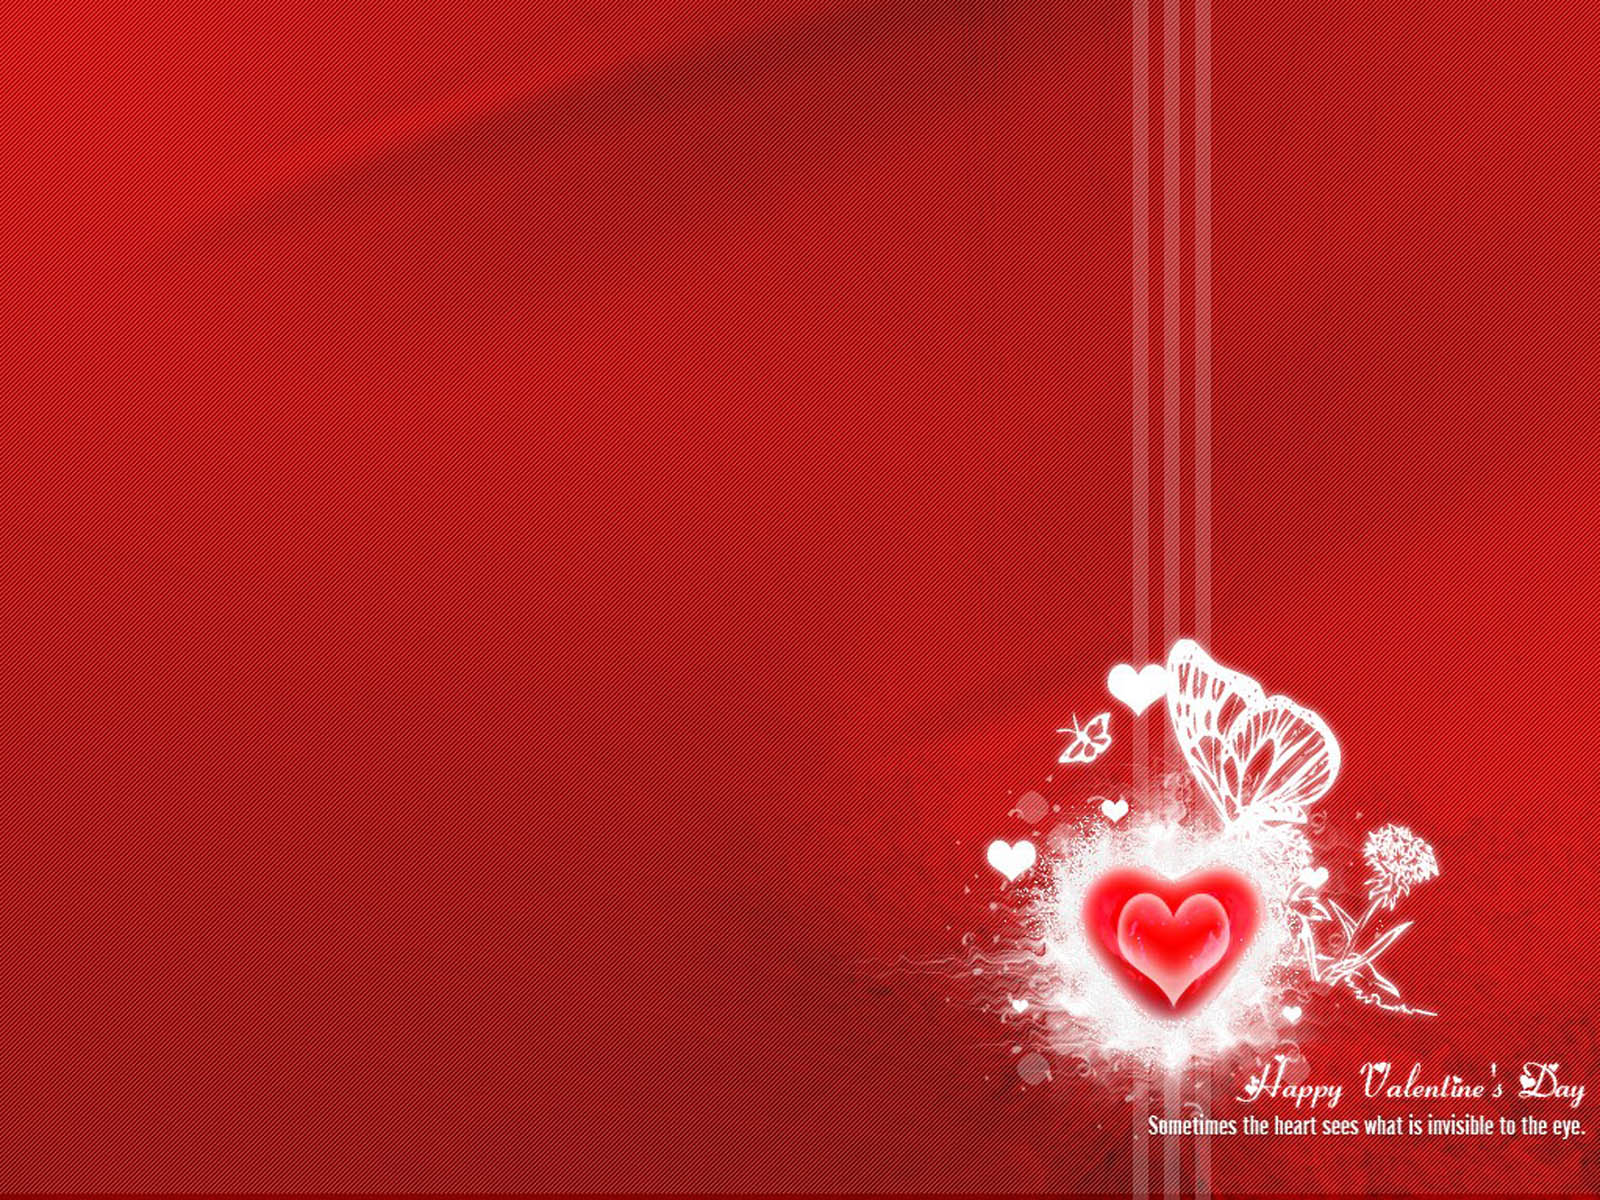 wallpapers Valentines Day Backgrounds 1600x1200